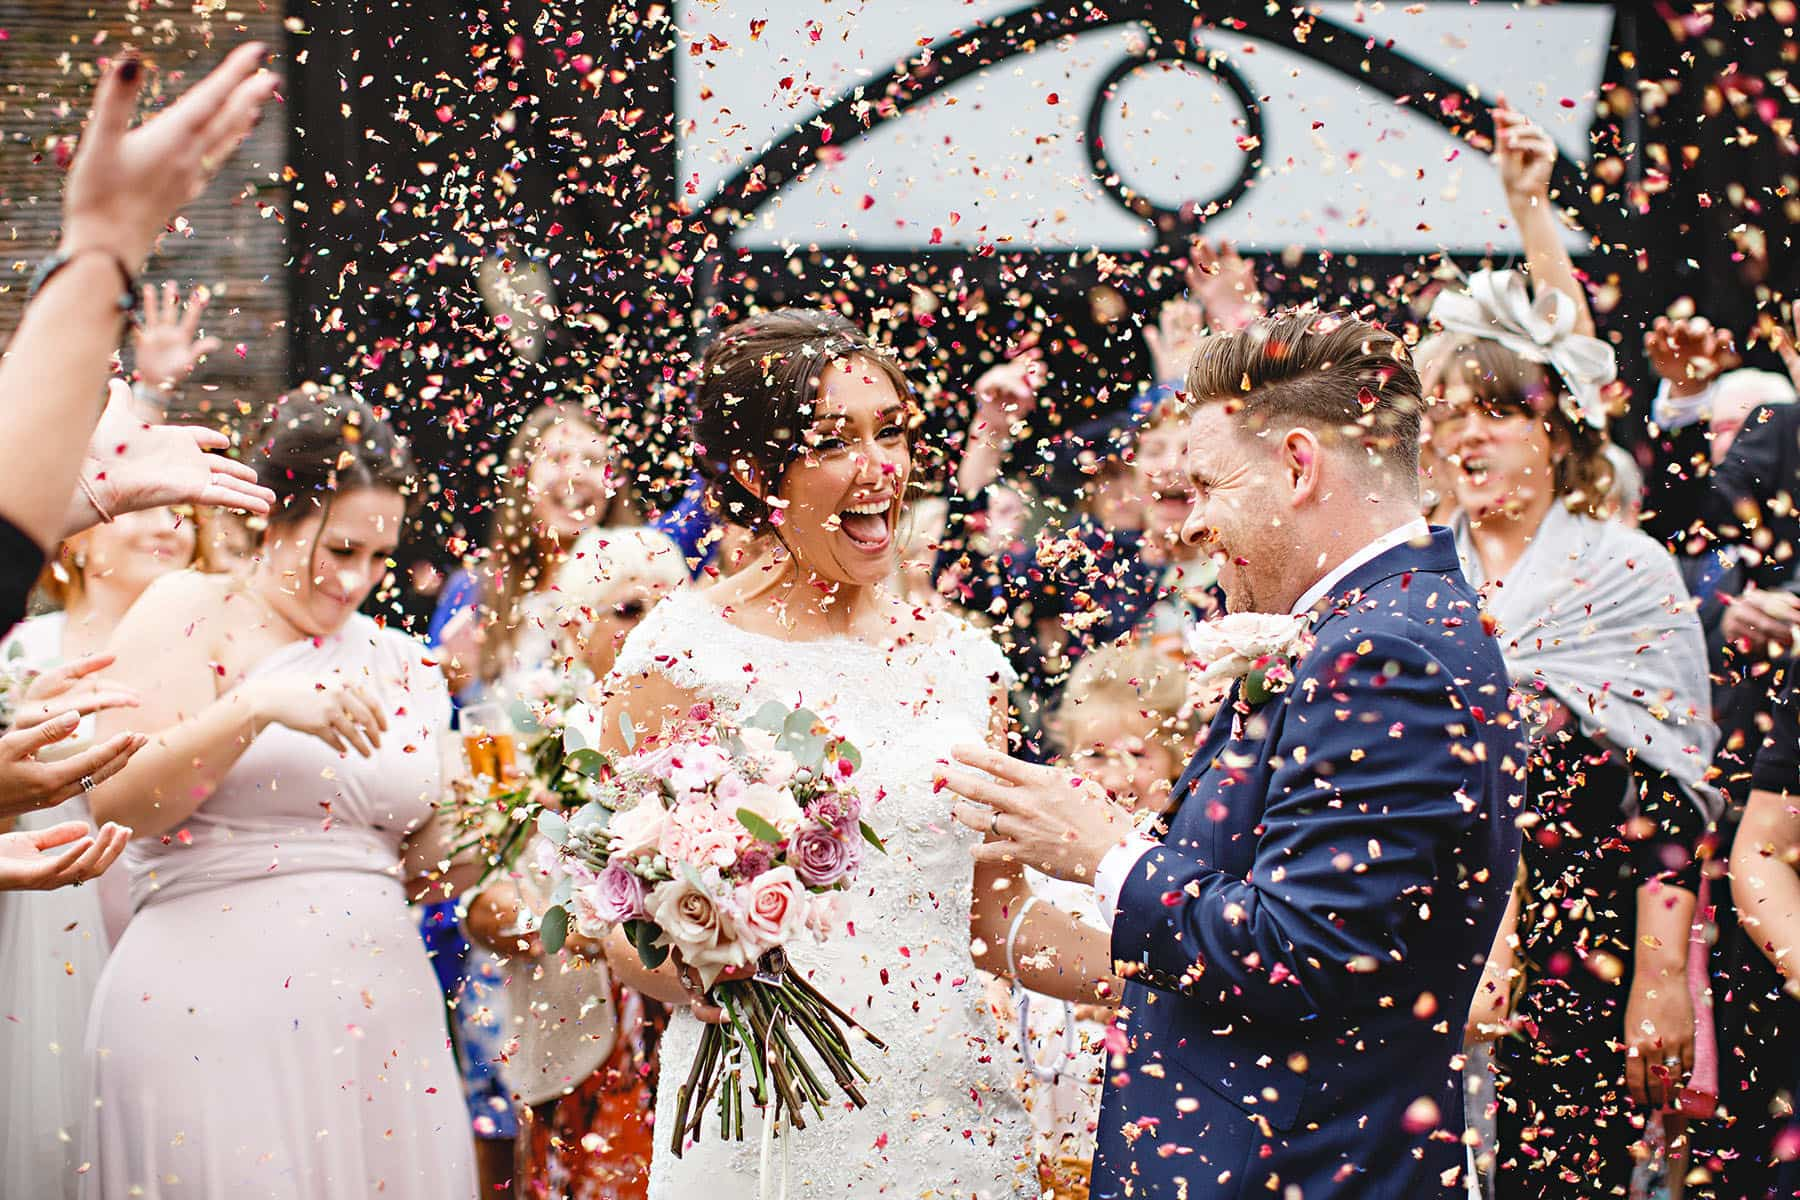 wedding guests throwing cofetti and the bride and groom are happy and excited on their wedding day